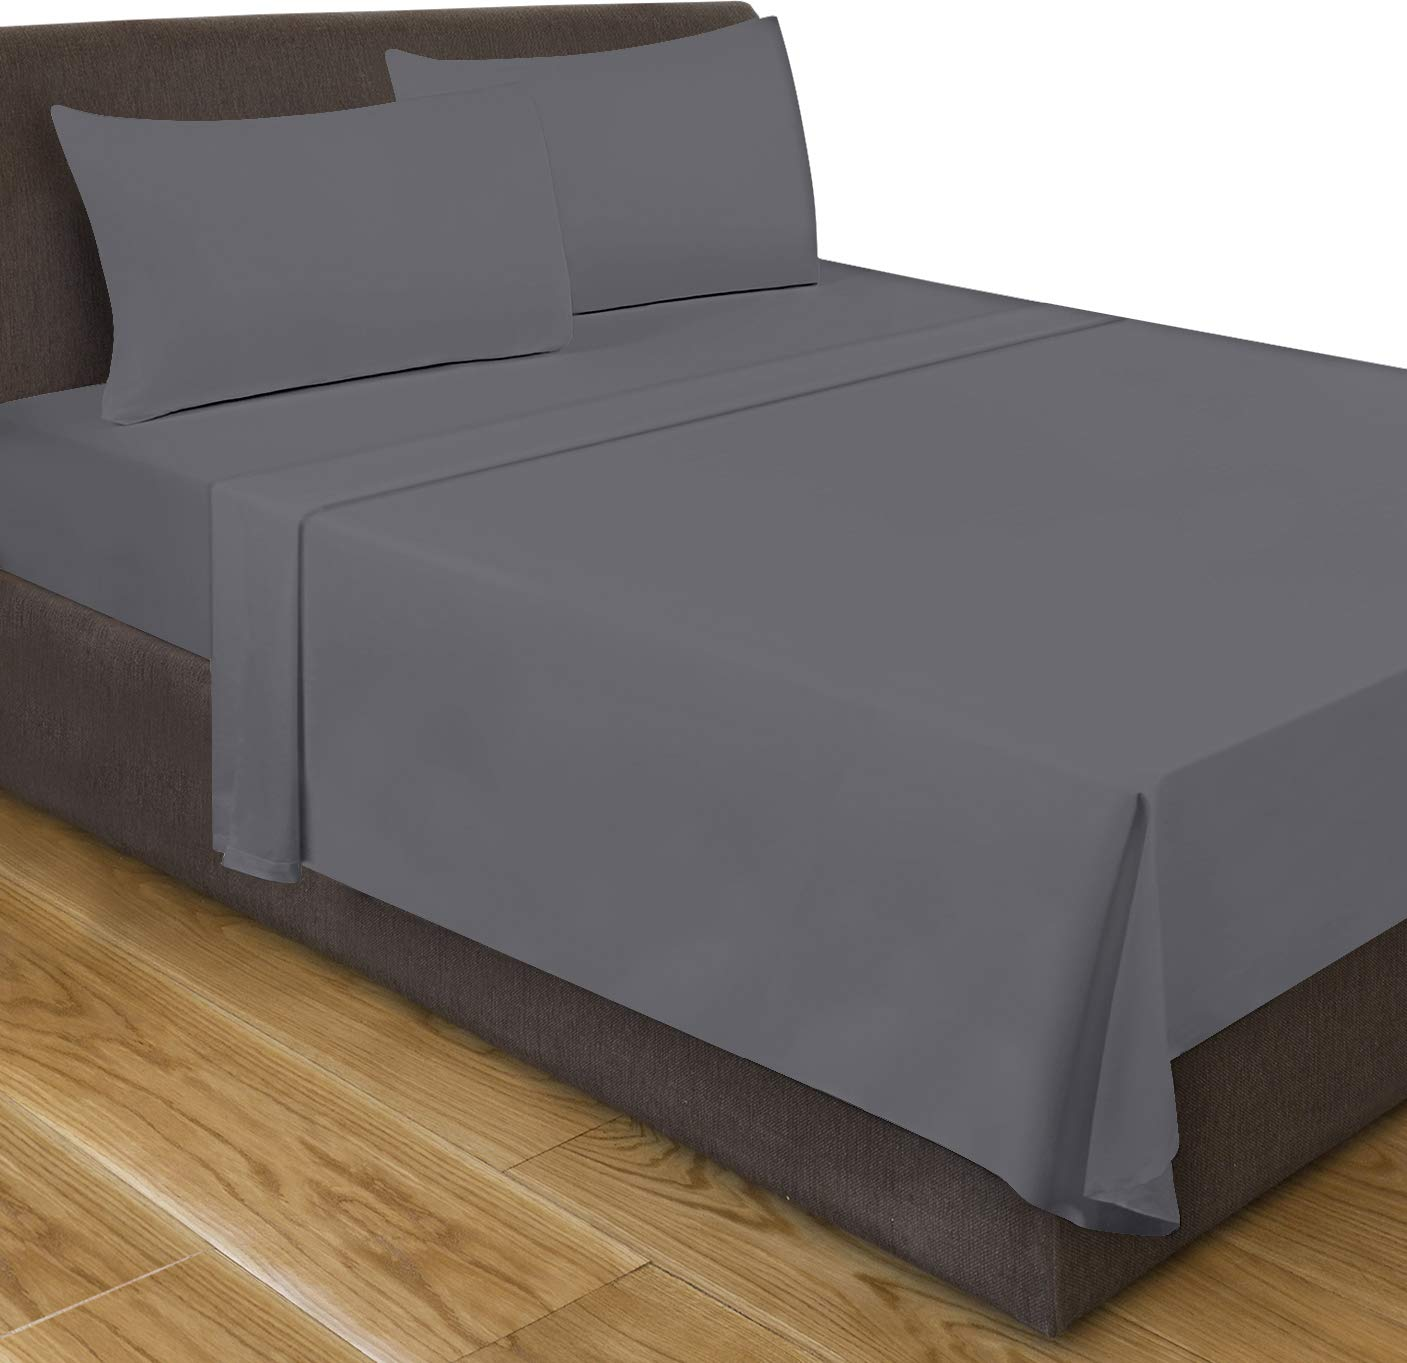 Utopia Bedding King Flat Sheet (Grey)